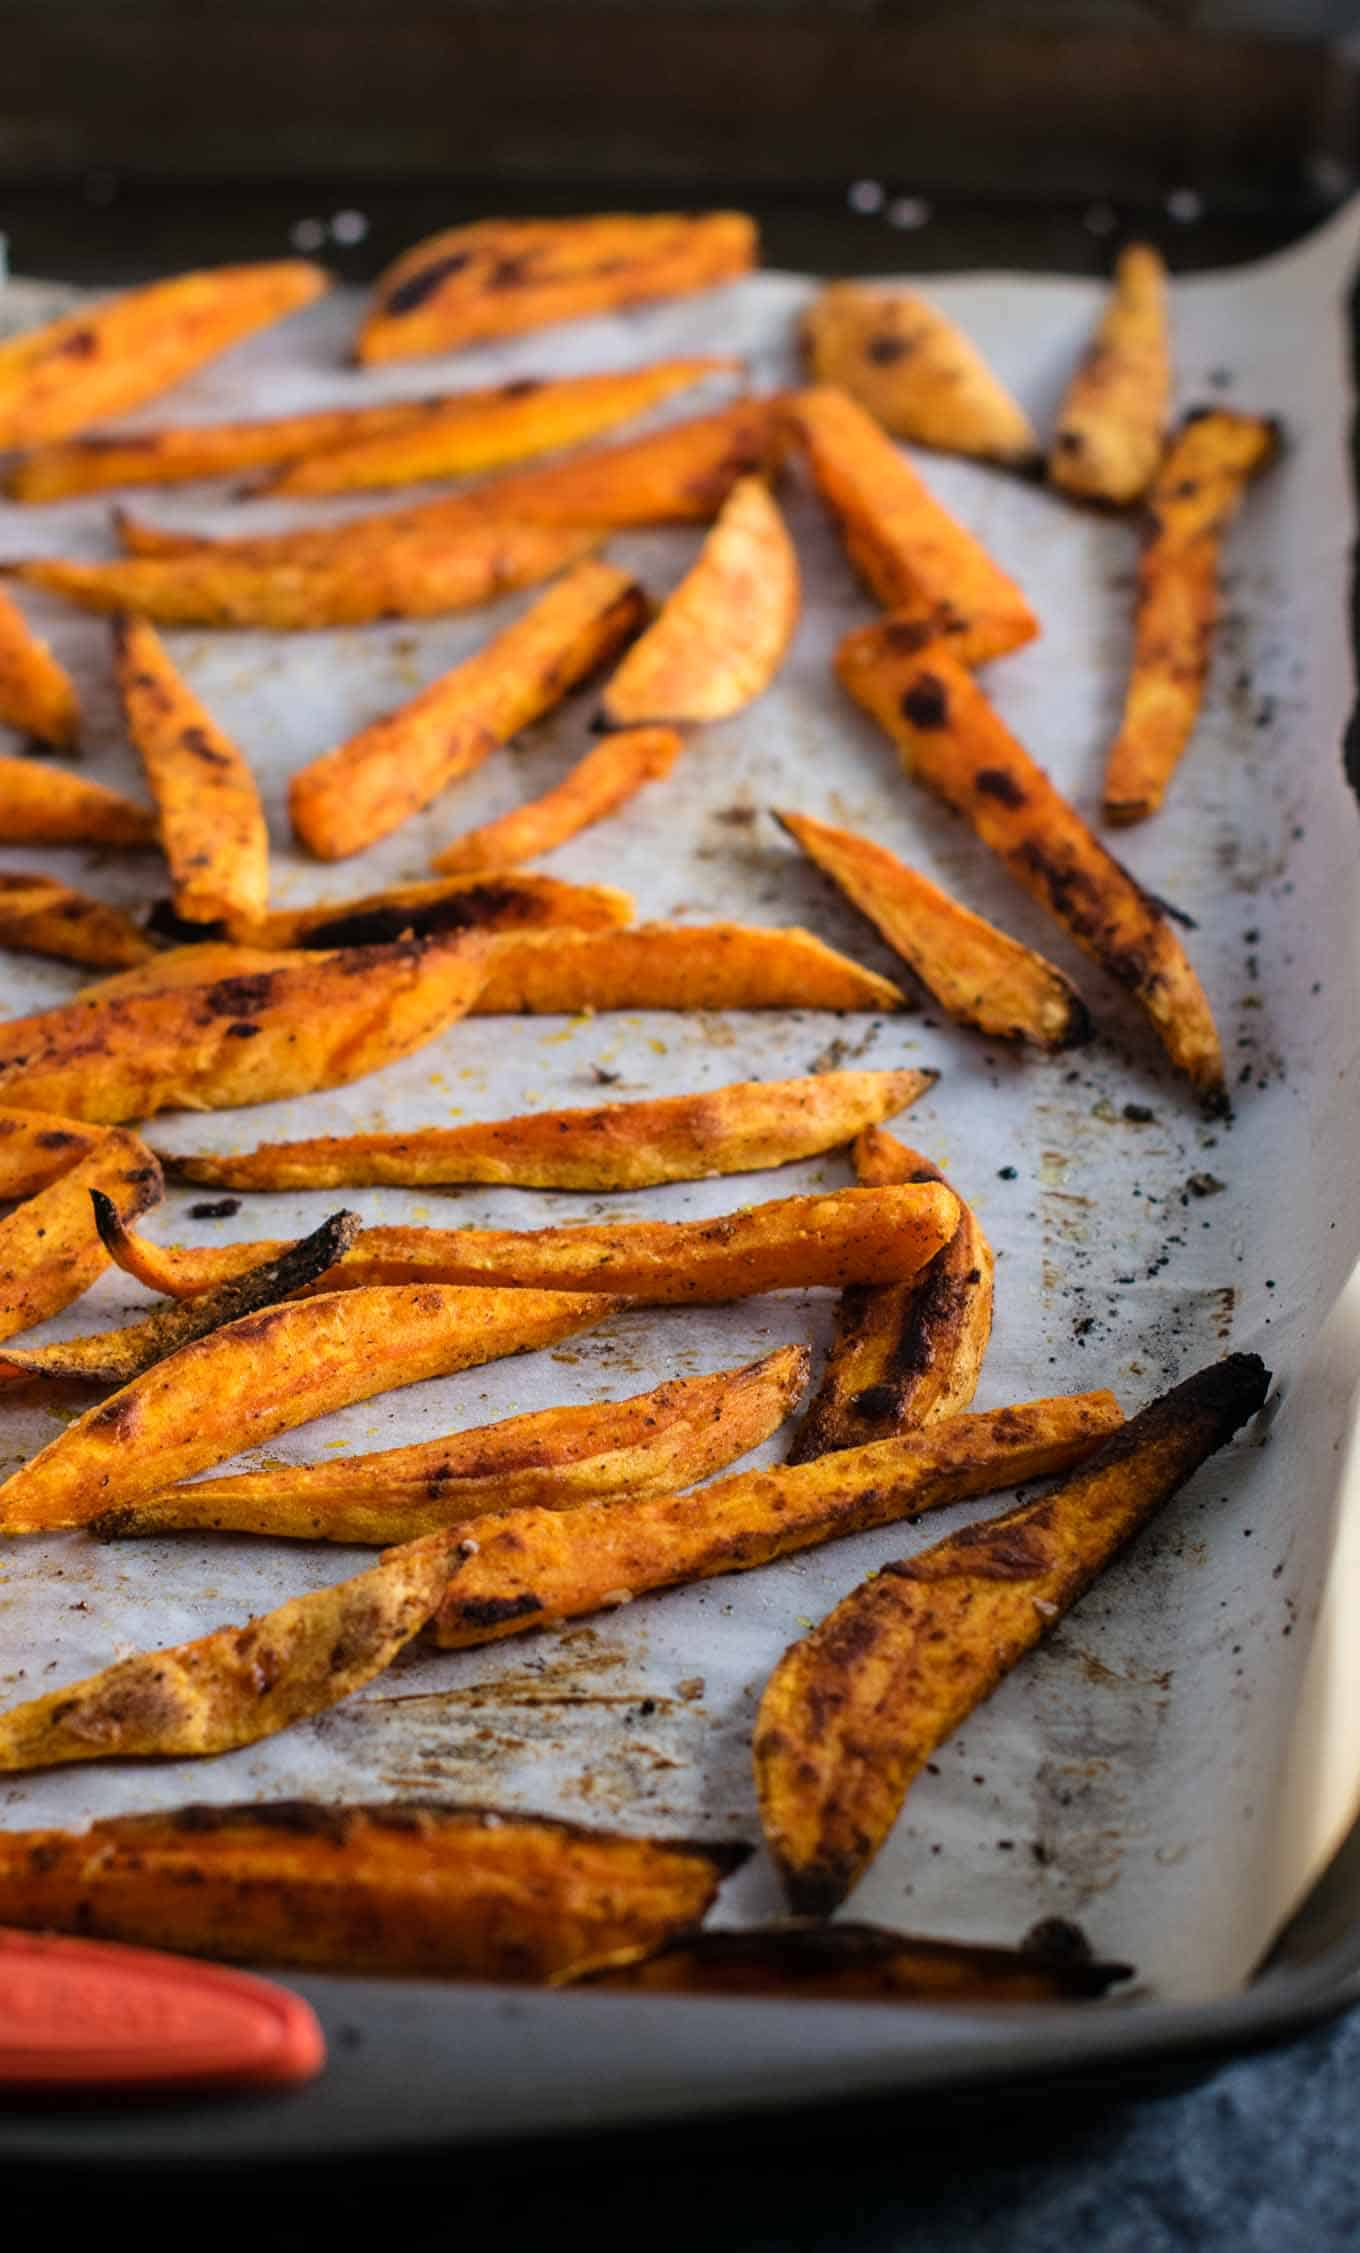 I am obsessed with these roasted sweet potato fries! The perfect combo of salty sweet and the spices are perfect. So easy and go with everything! #sweetpotatofries #vegetables #sidedish #vegan #dinner #roastedsweetpotatofries